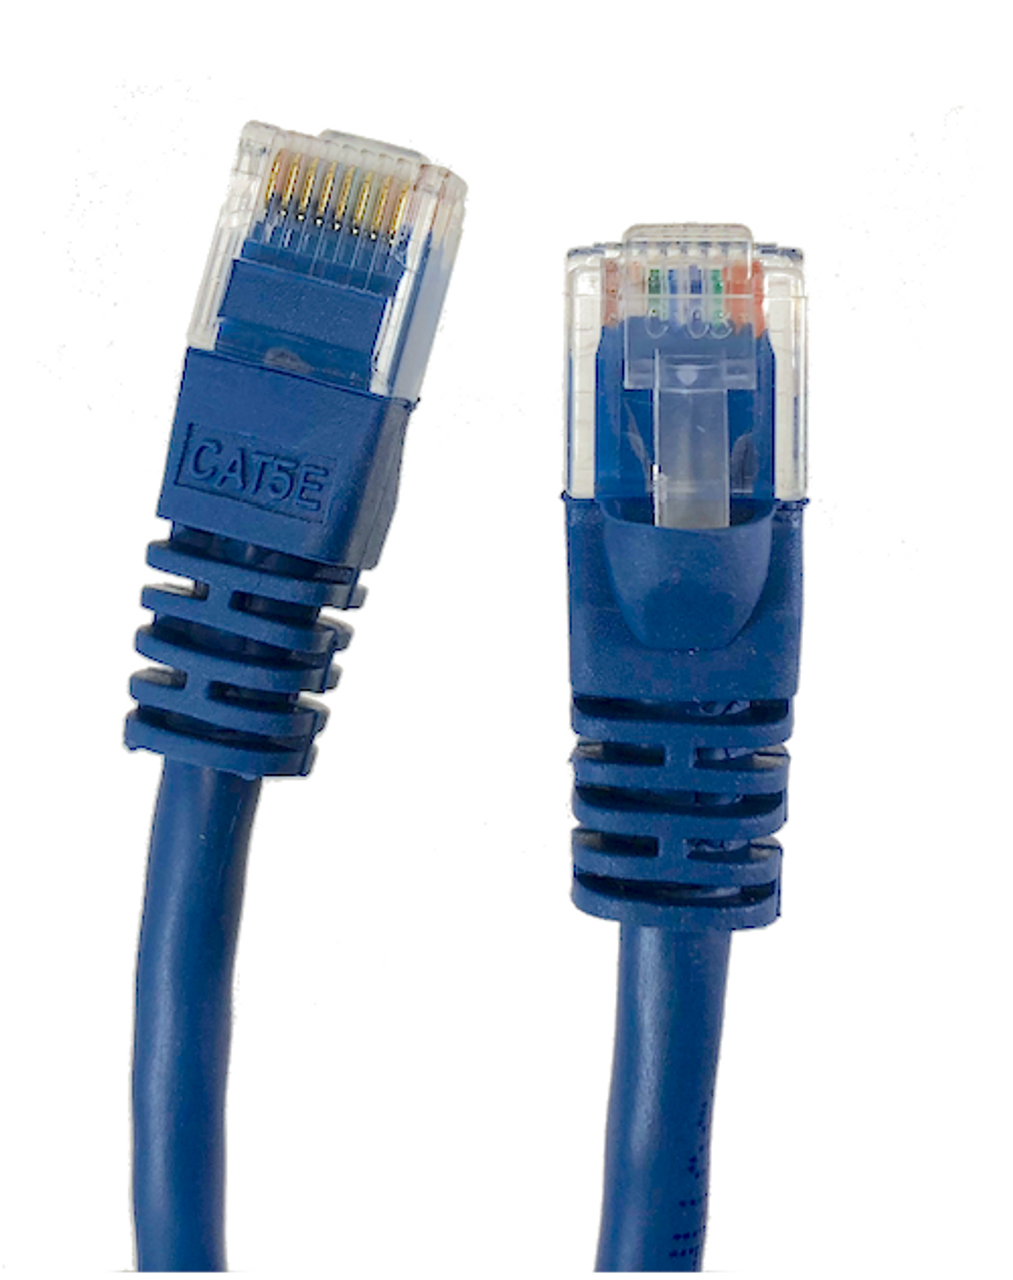 Category 5E UTP RJ45 Patch Cable Blue - 25 ft